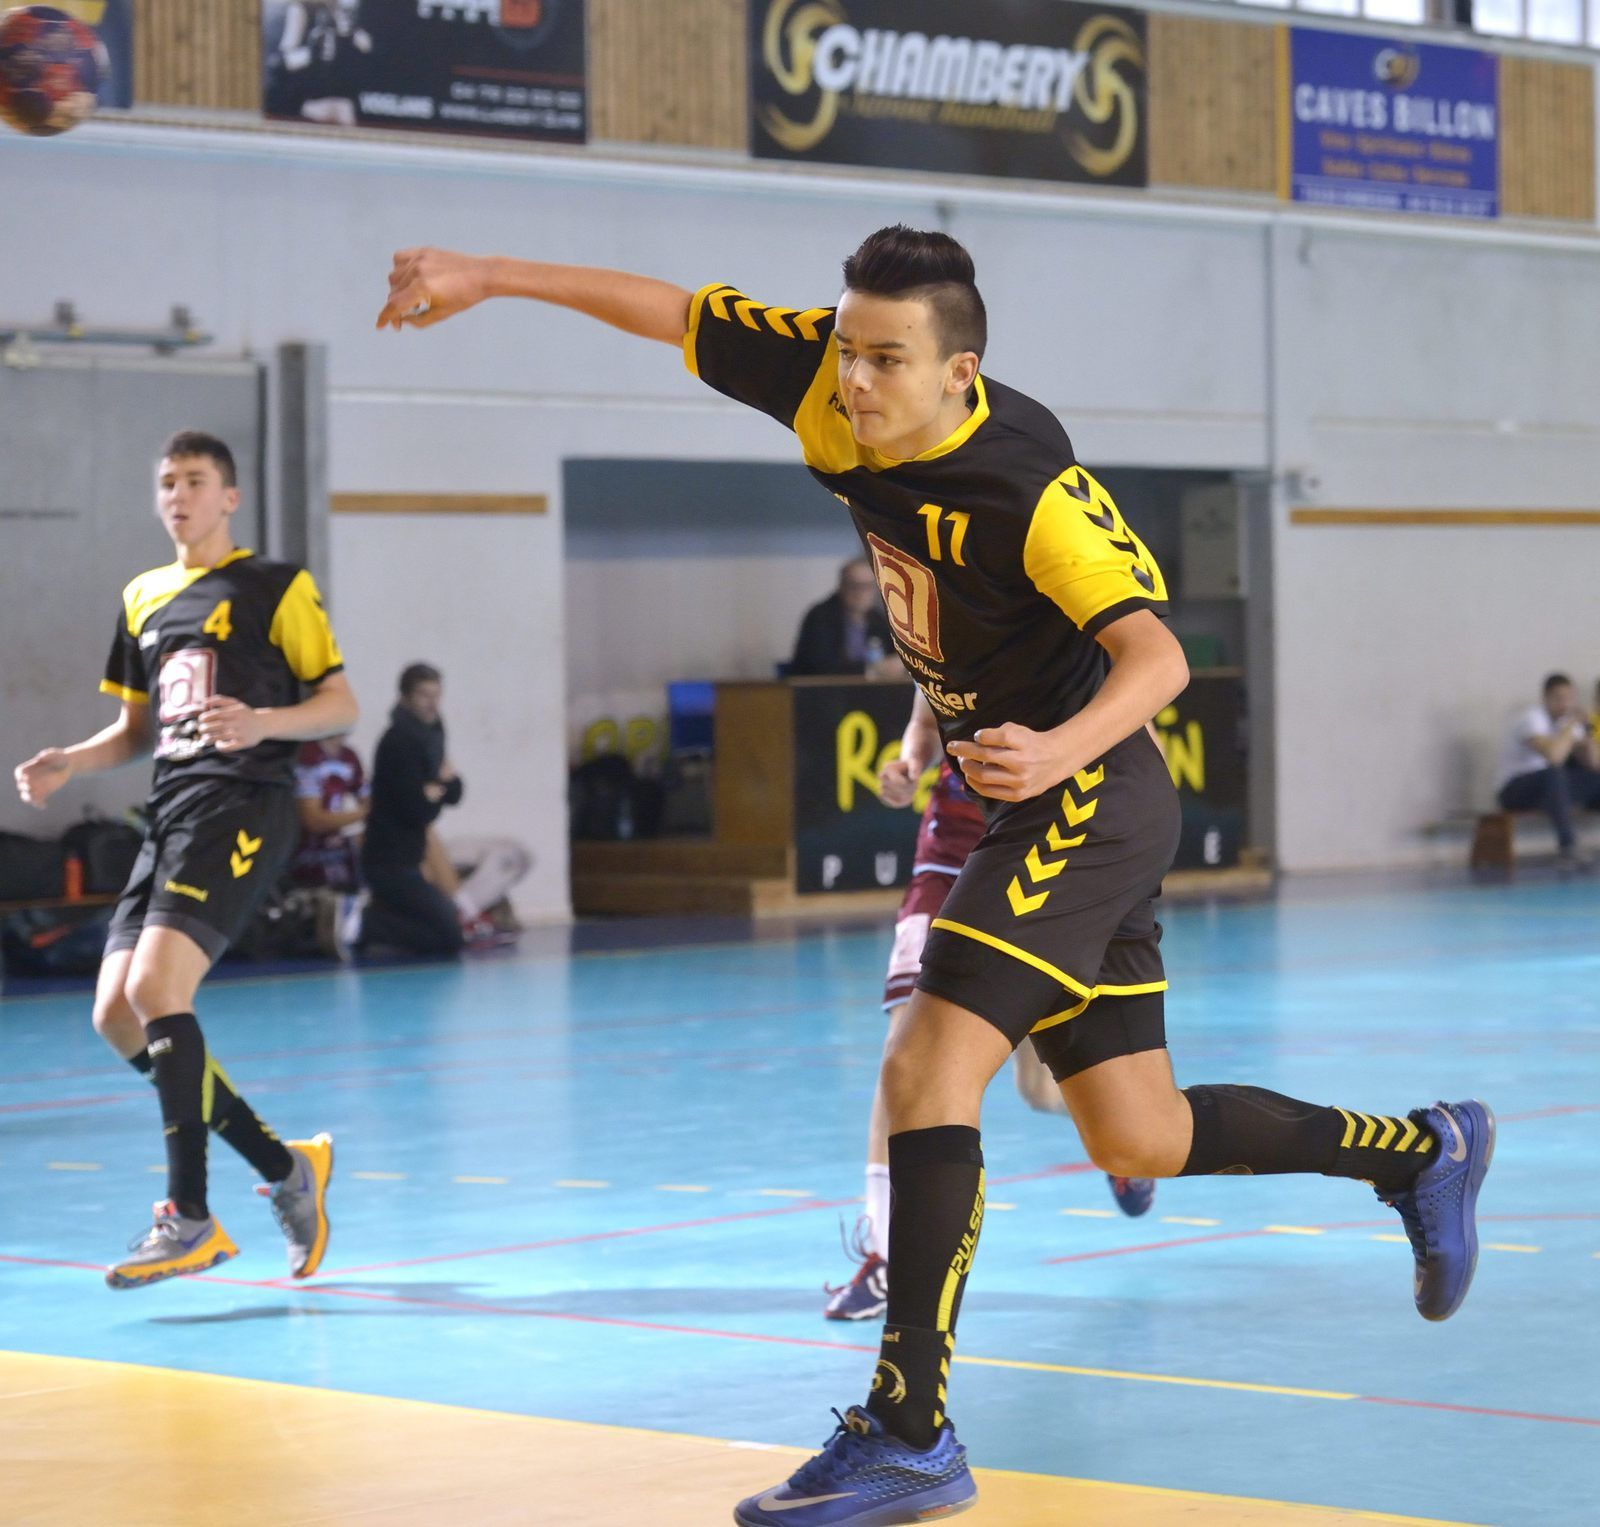 - 15 ligue CHAMBERY assomme Bourgoin dimanche 20 mars 2016